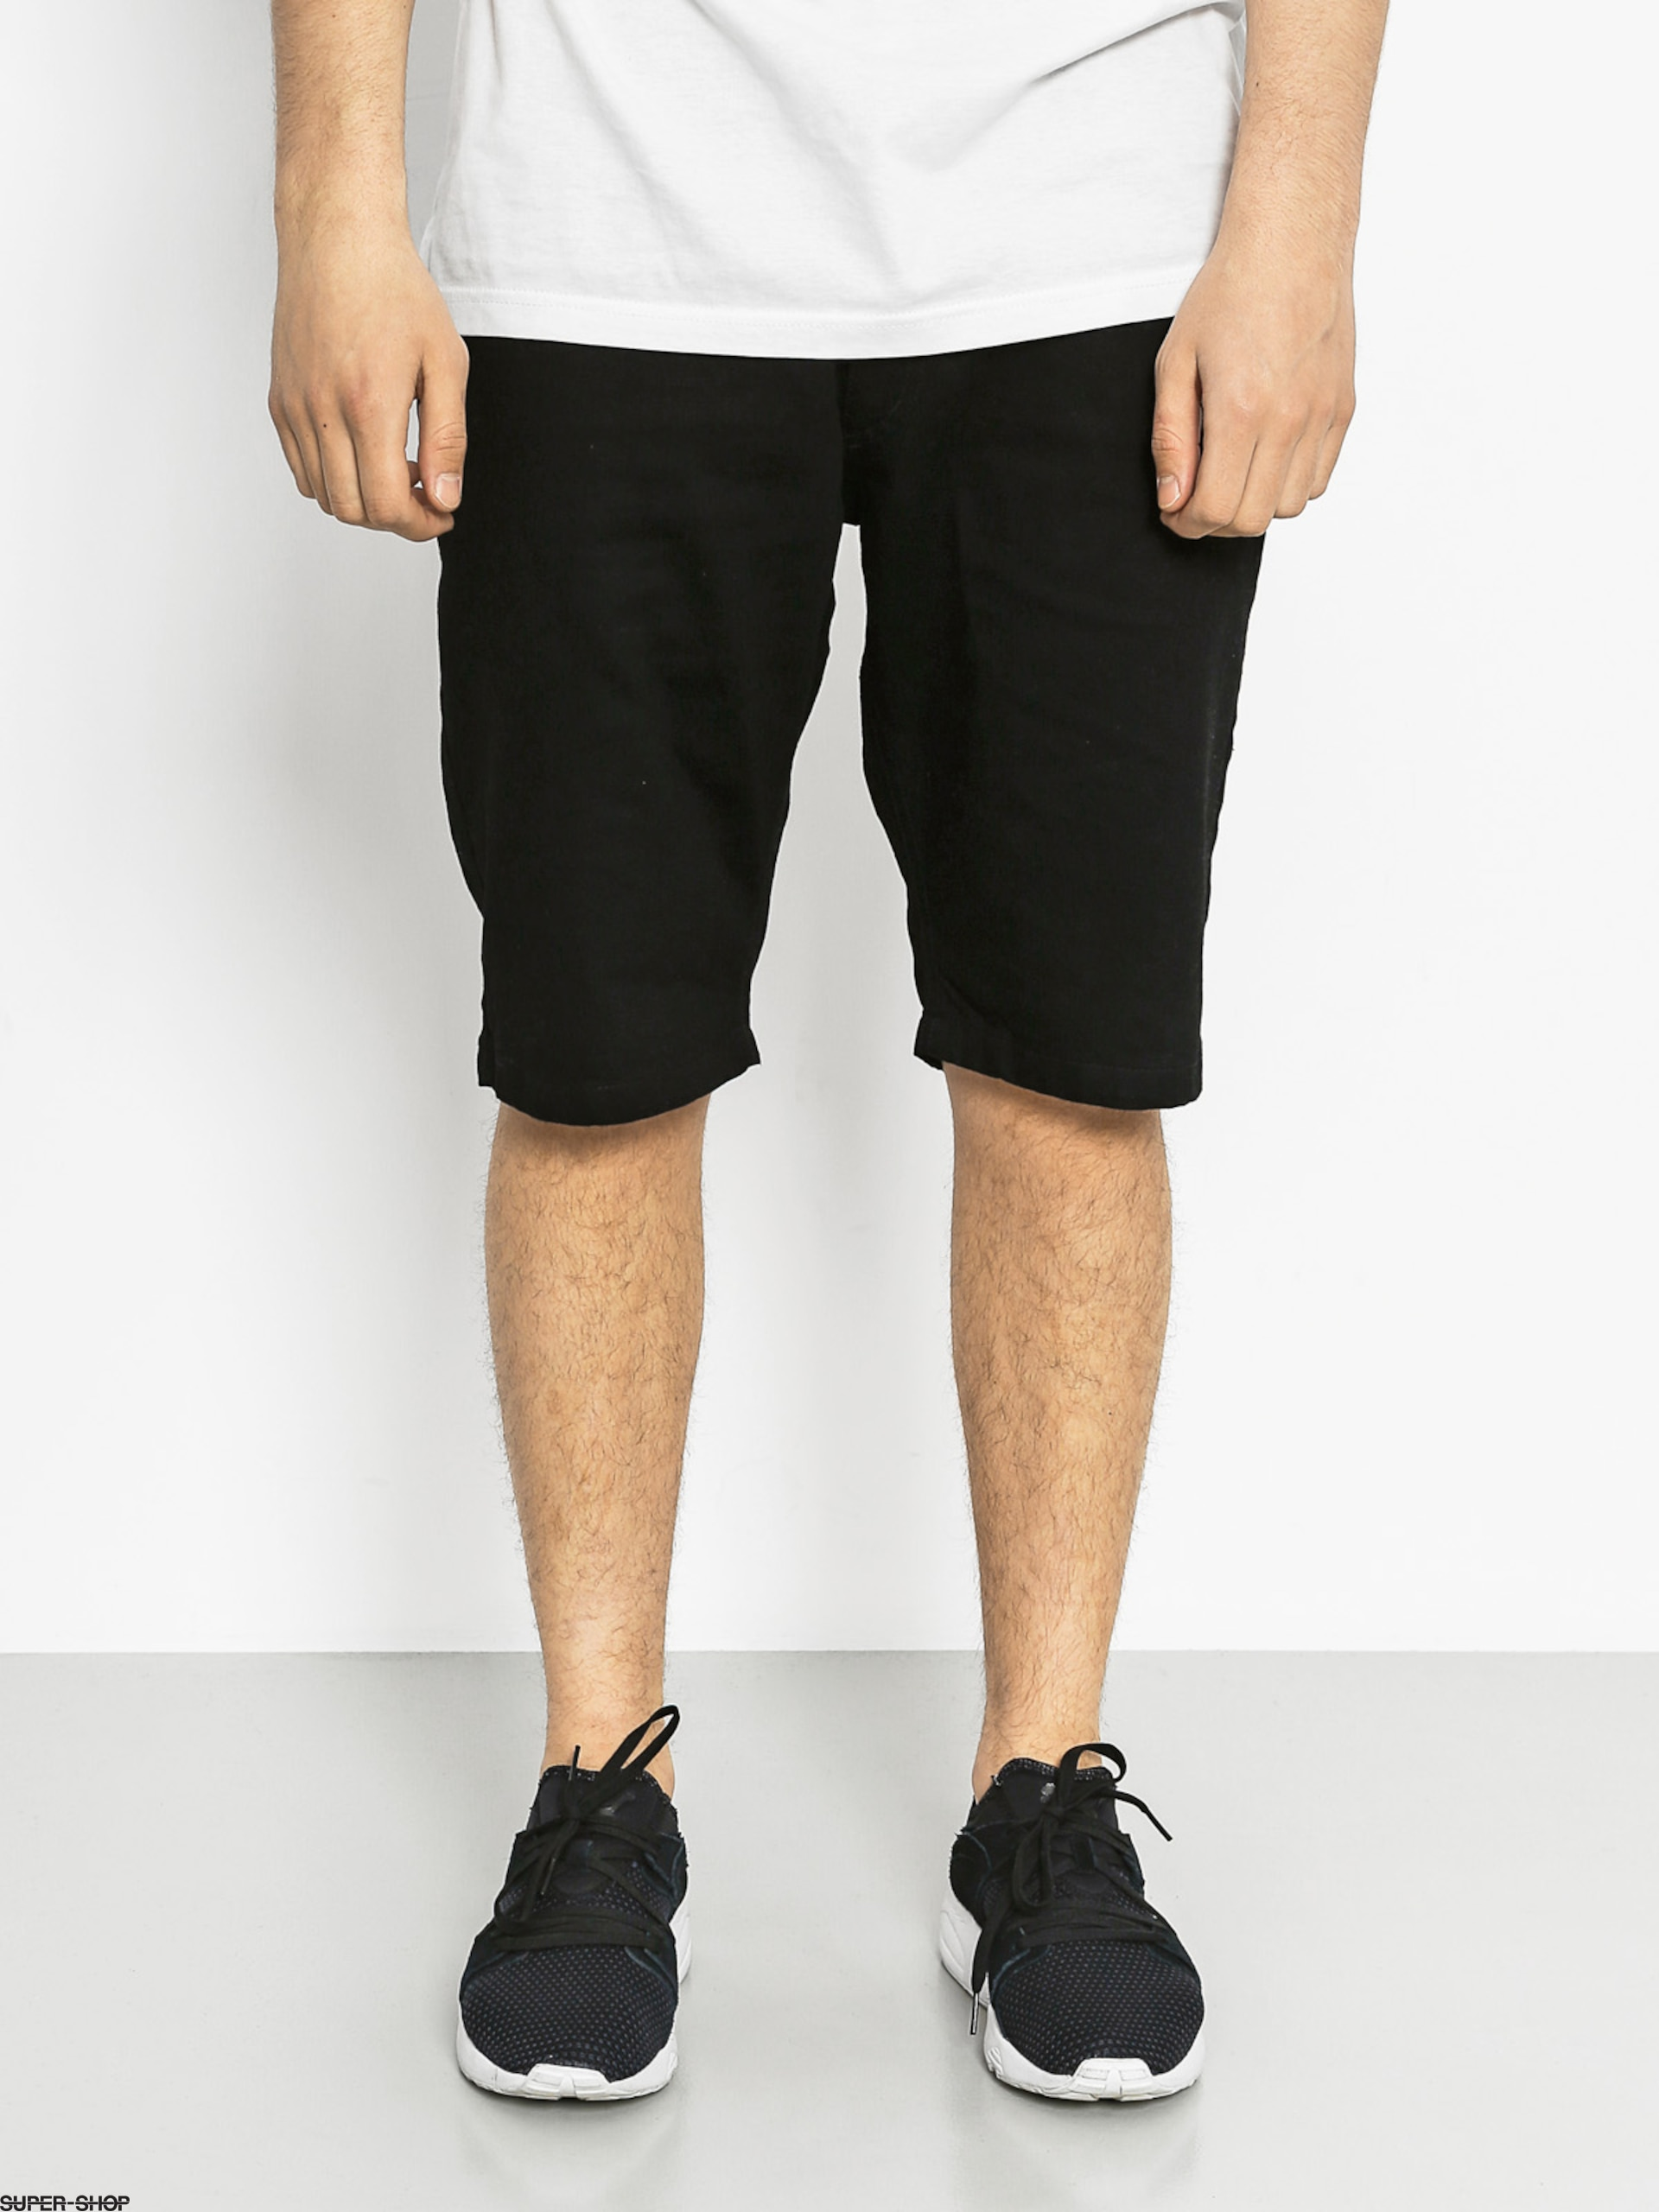 Nervous Shorts Jeans (black)